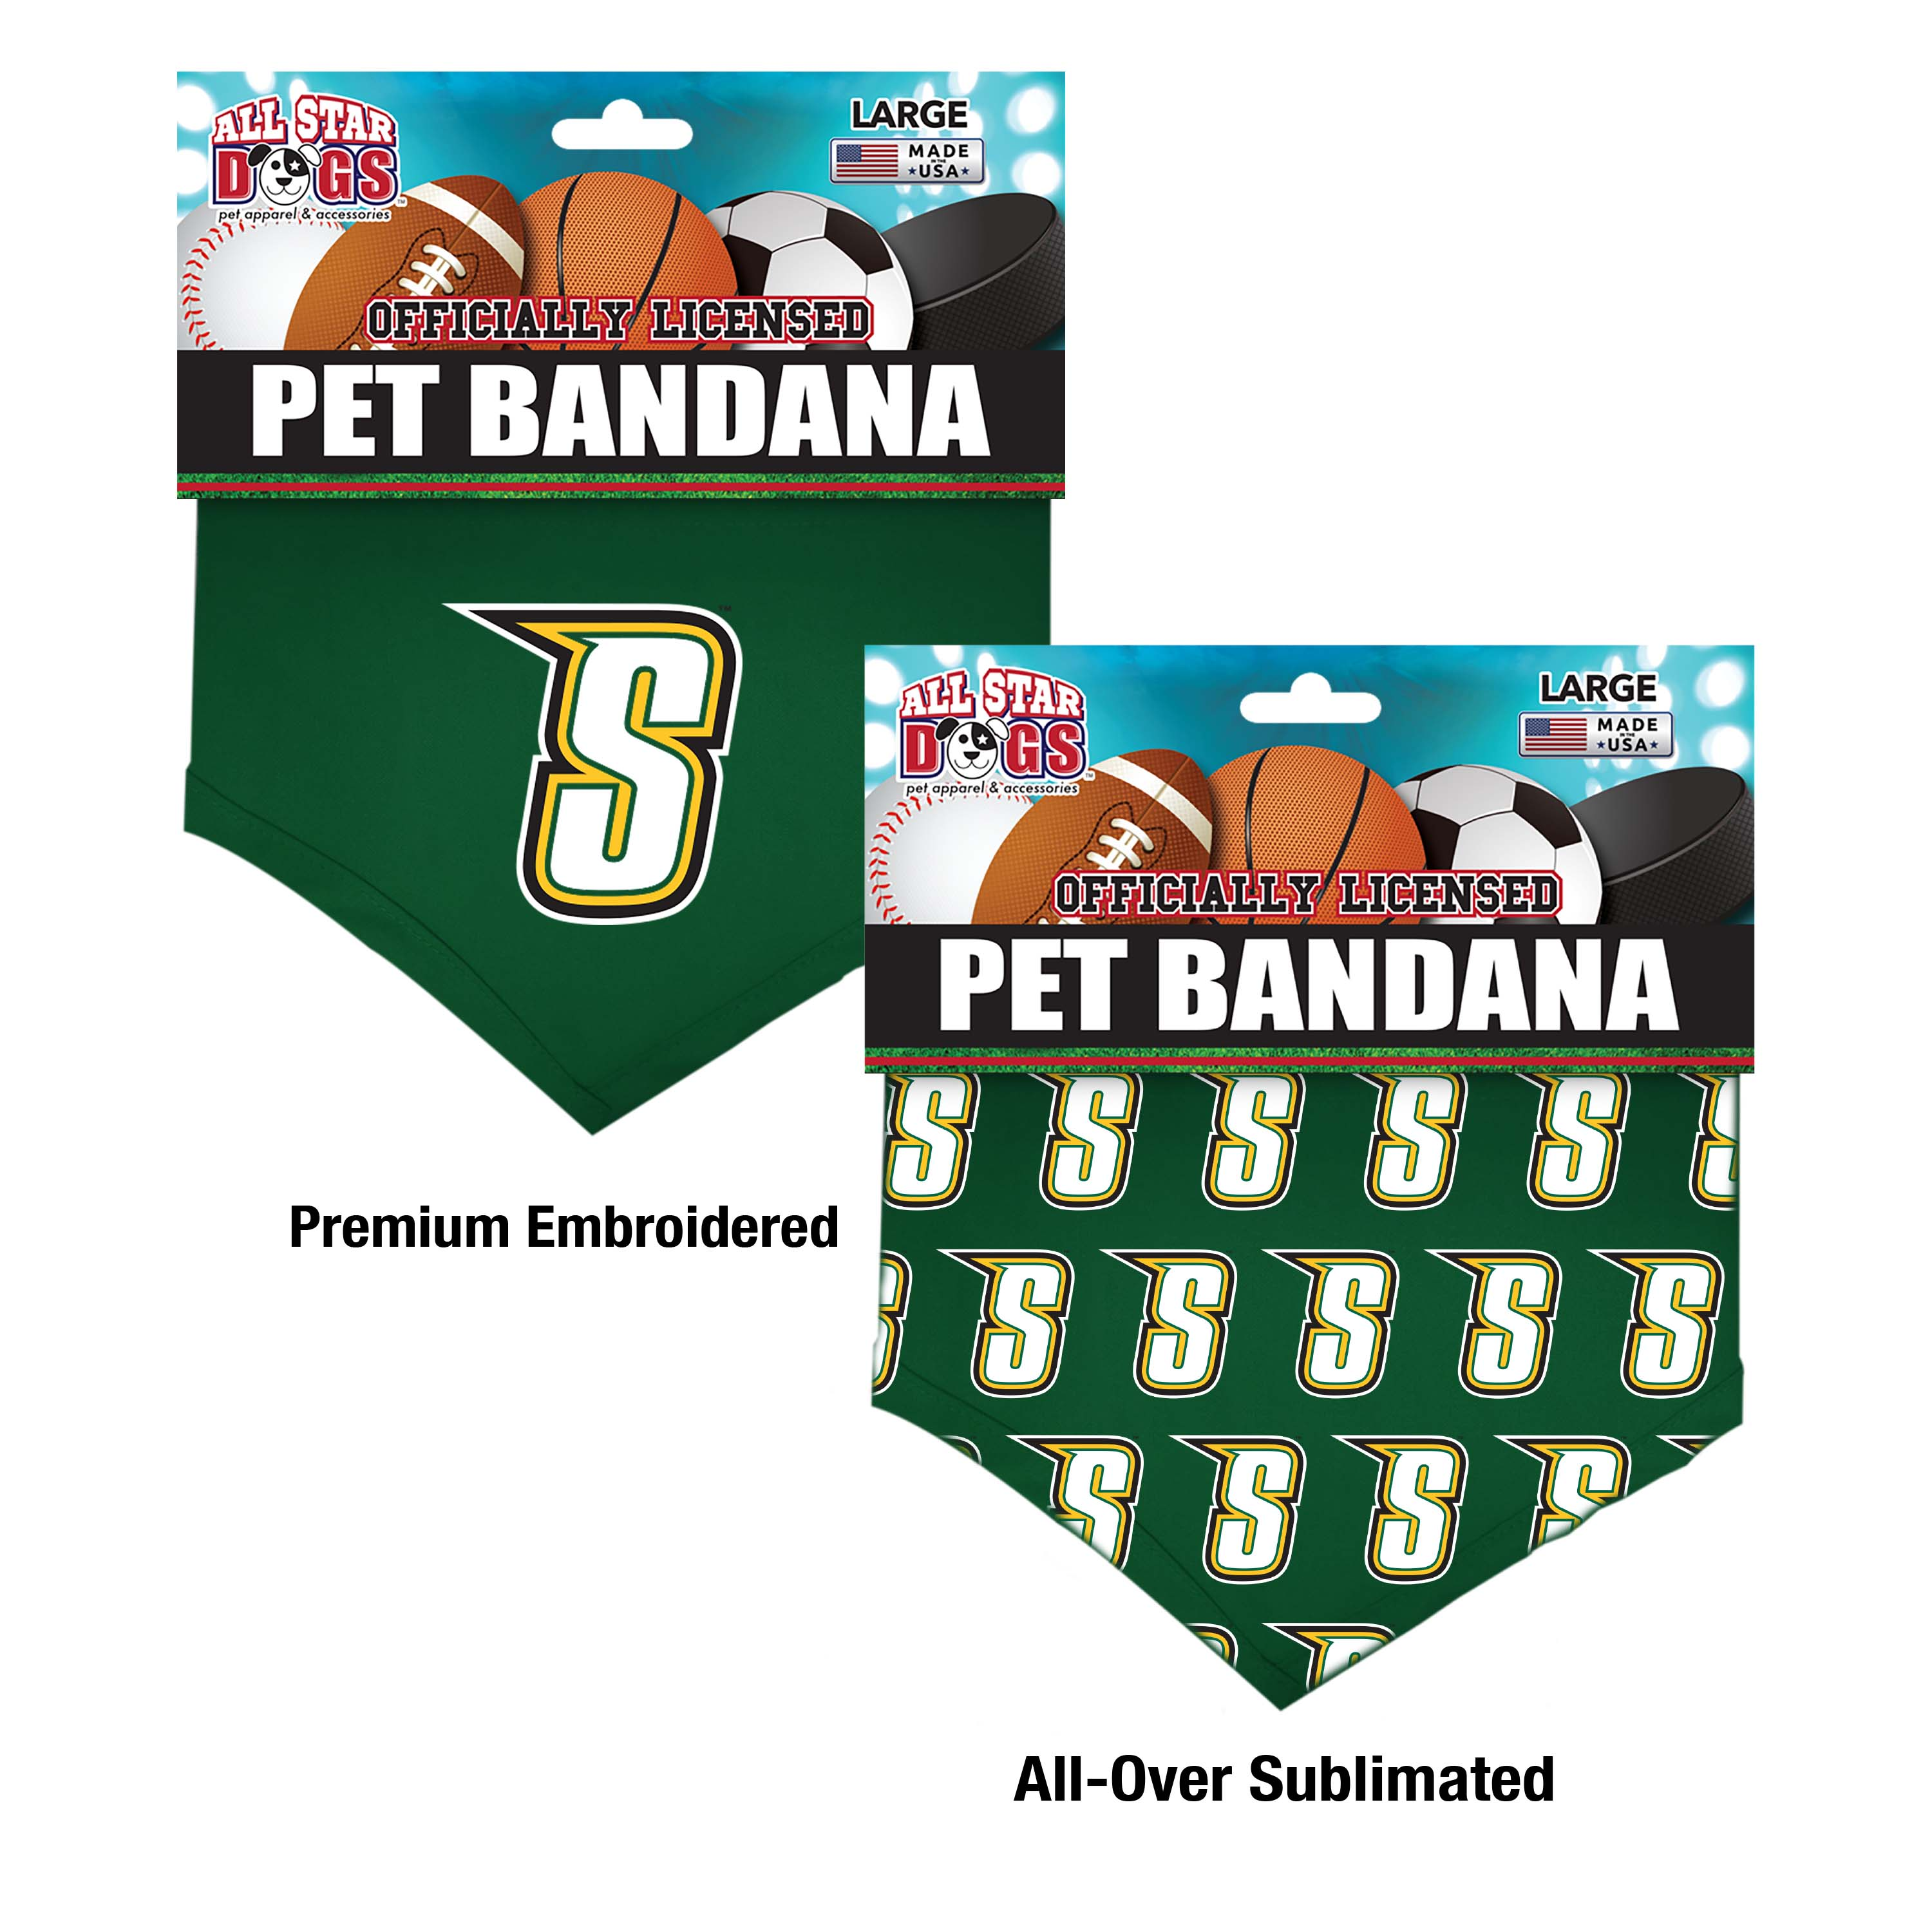 reputable site e3749 834d1 All Star Dogs: Siena College Saints Pet apparel and accessories